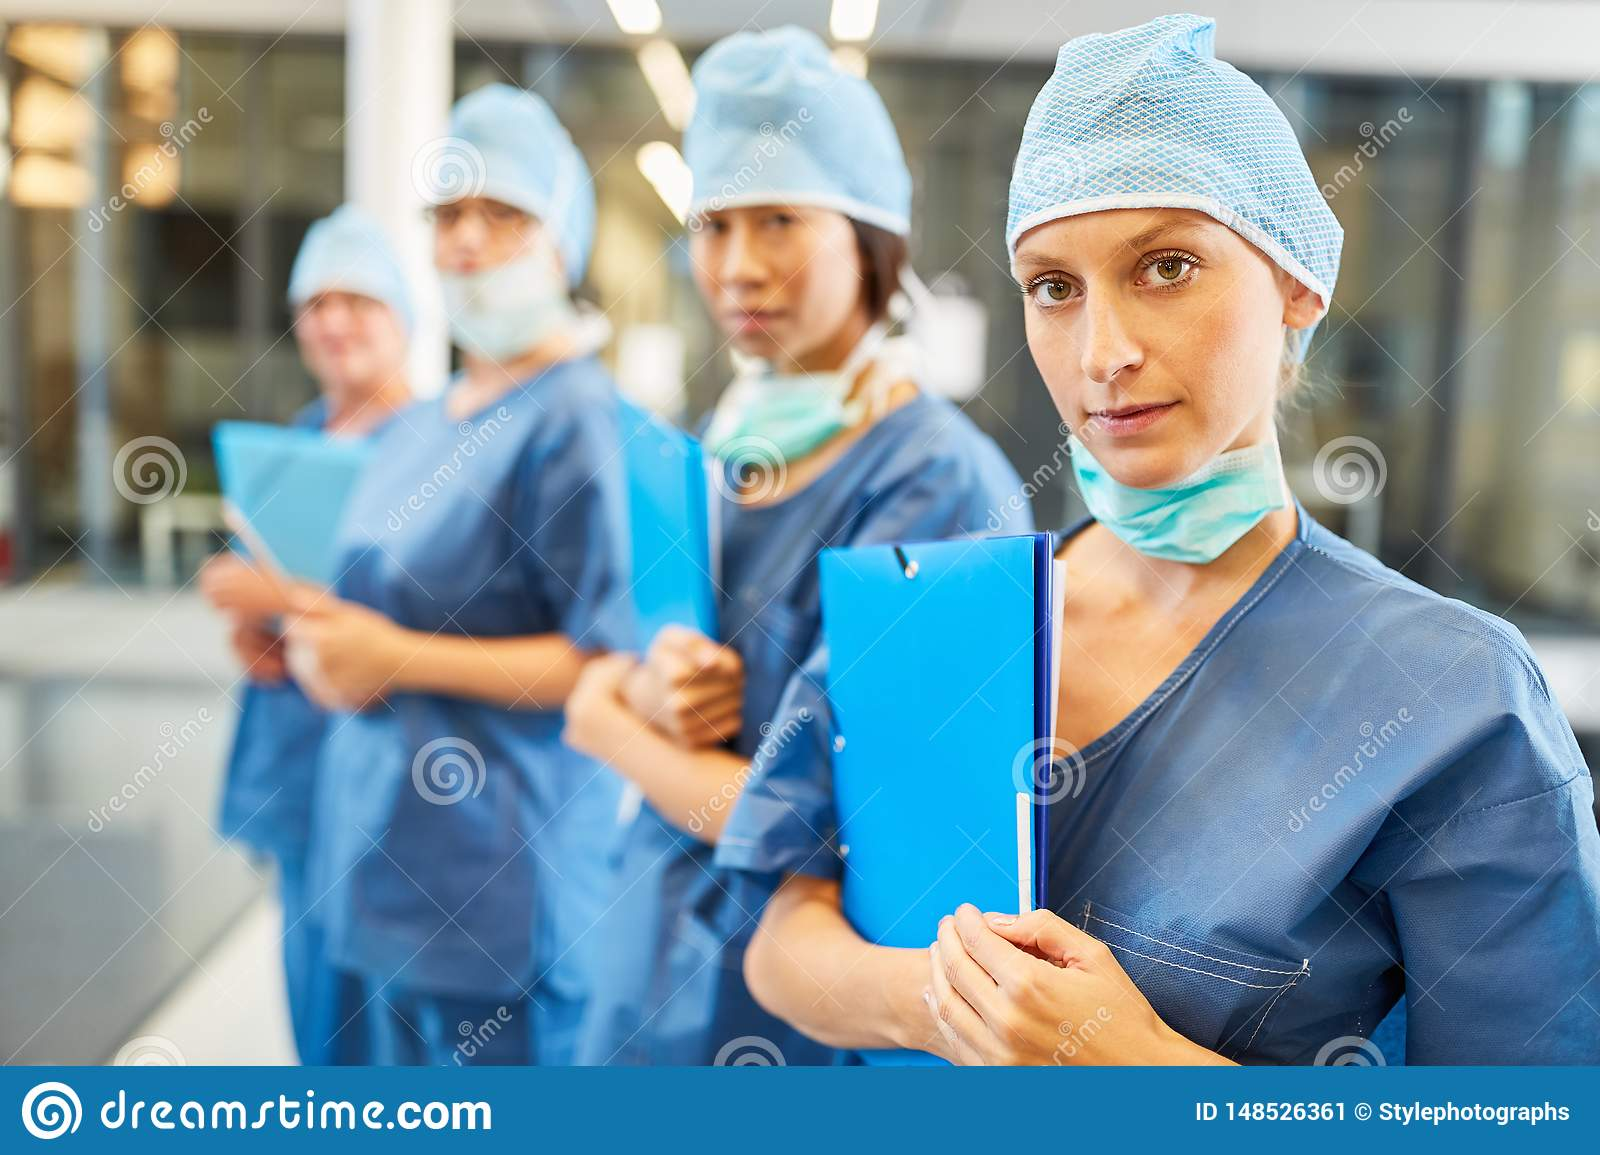 Young female doctor in blue surgical clothing with her team